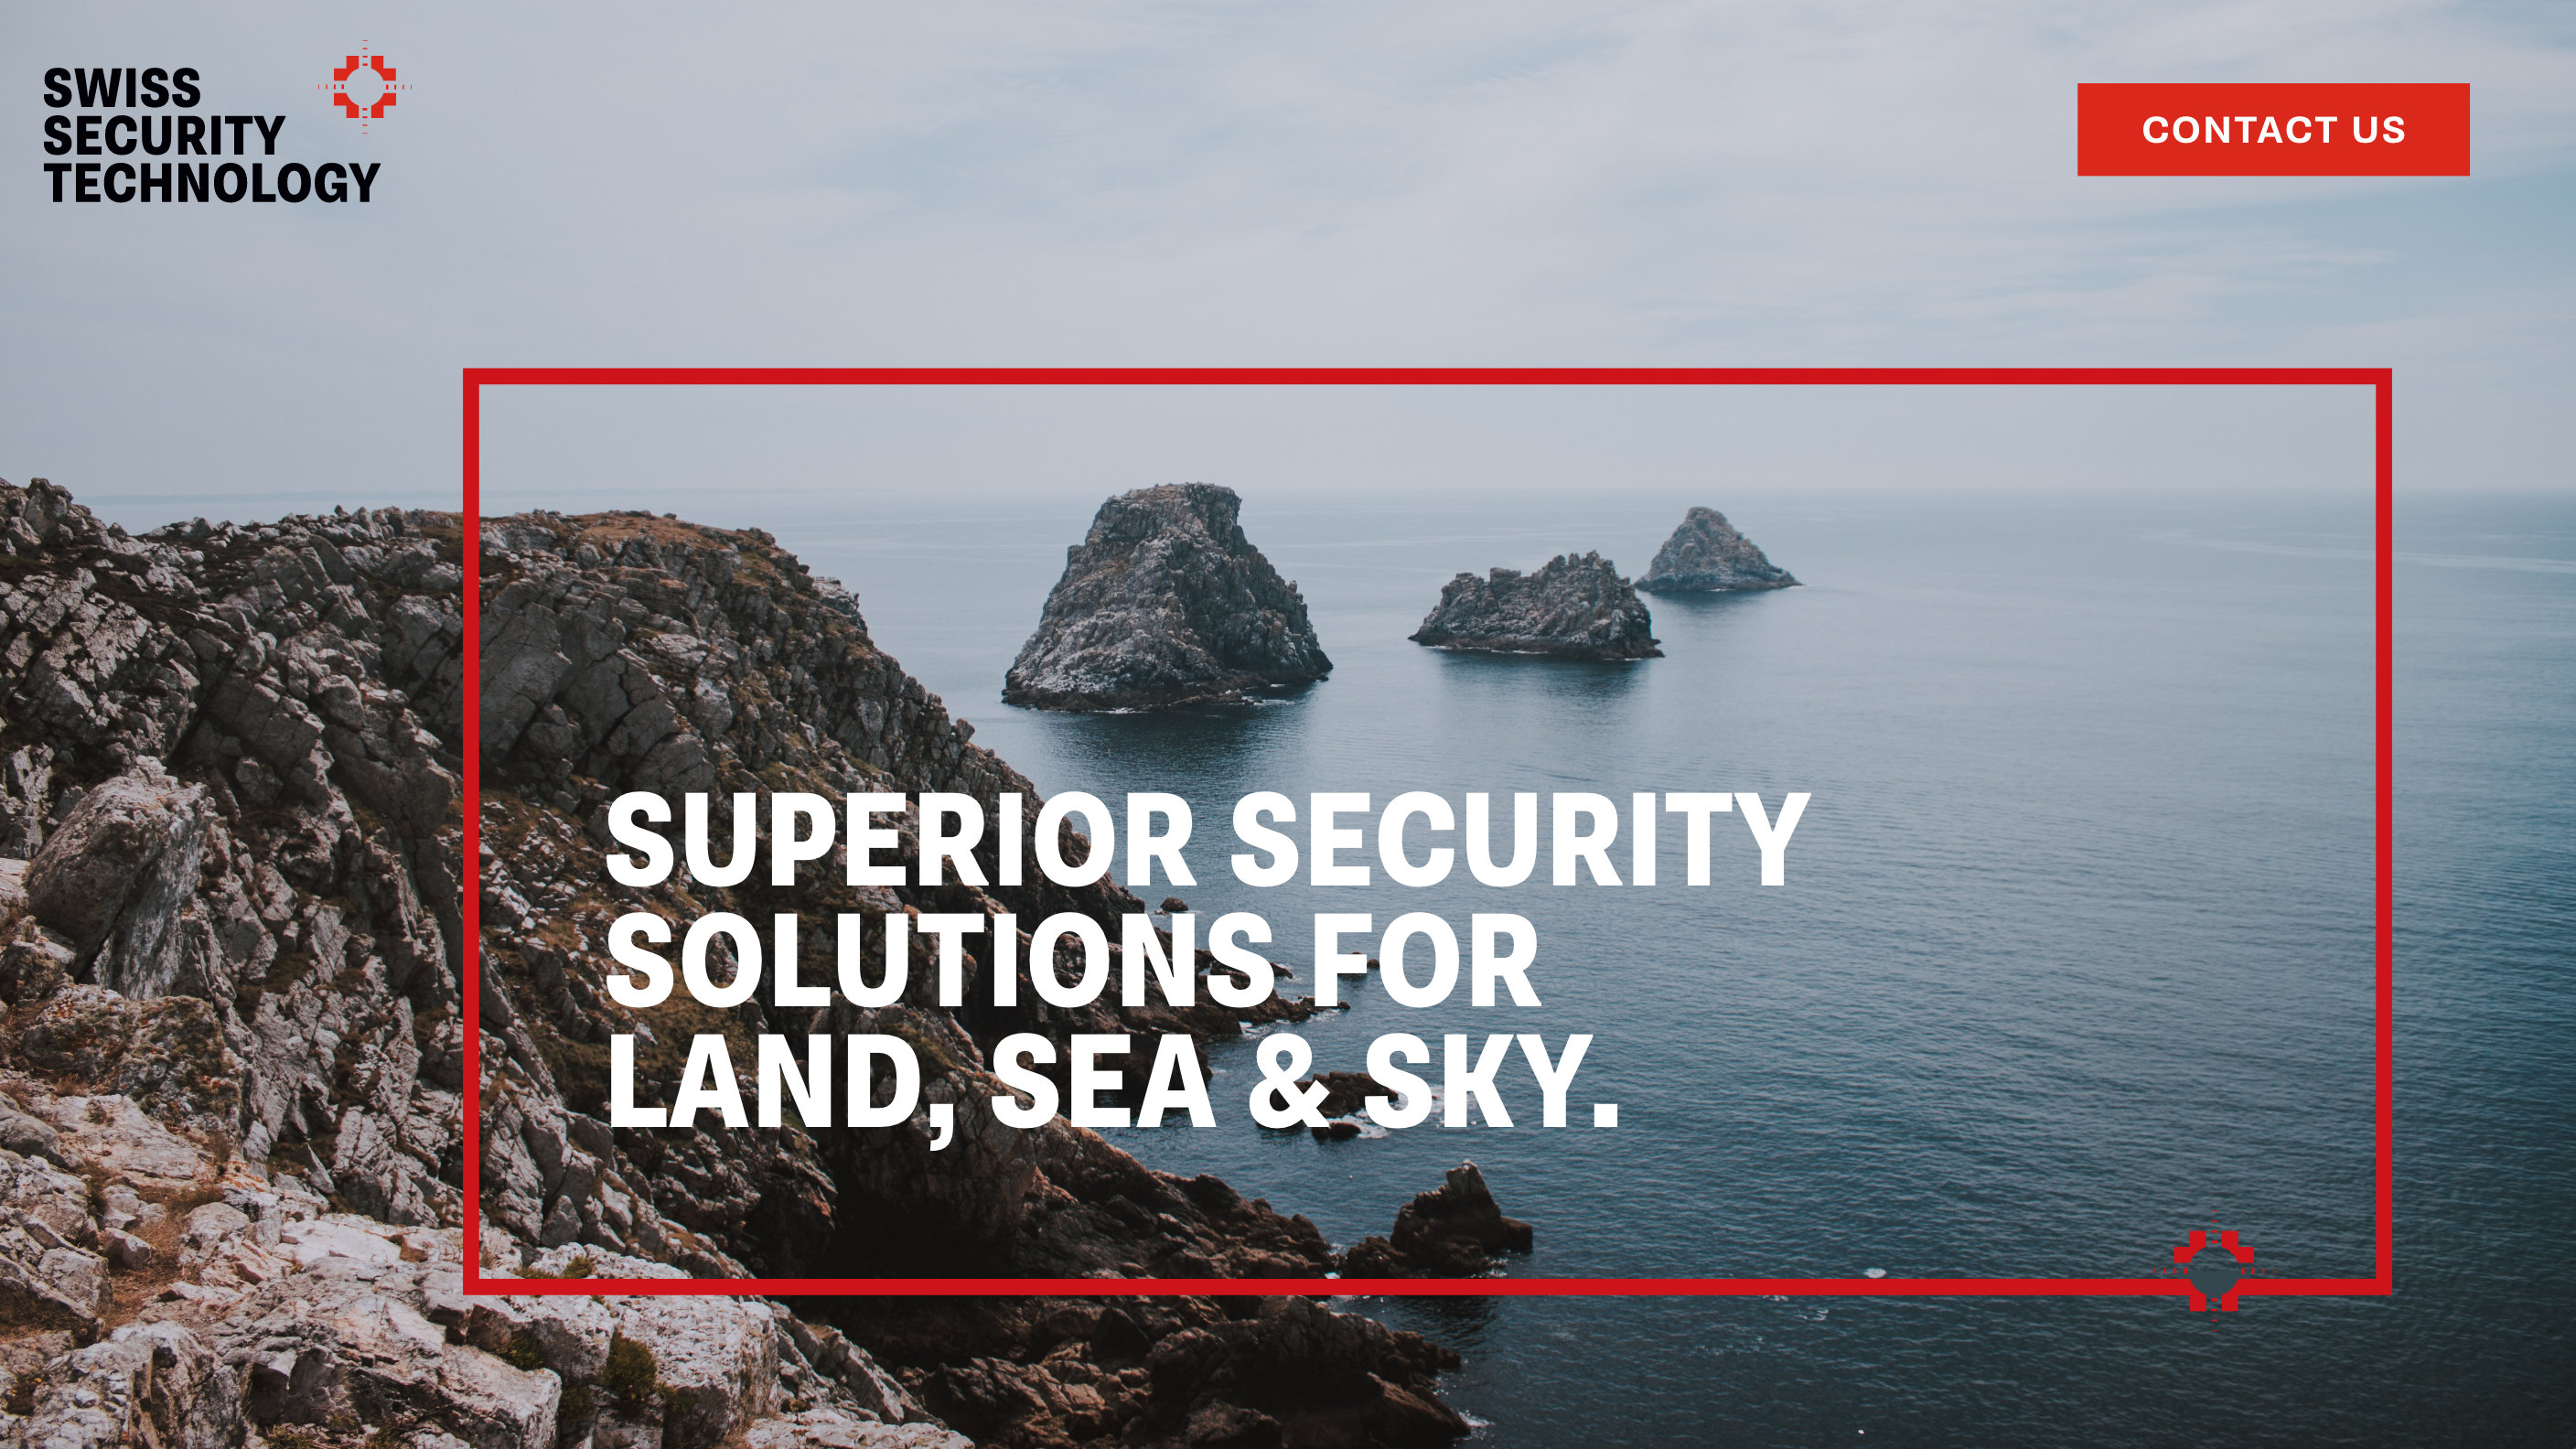 Swiss Security Technology Logo, Website Design and Branding by Laura Ramsay Design